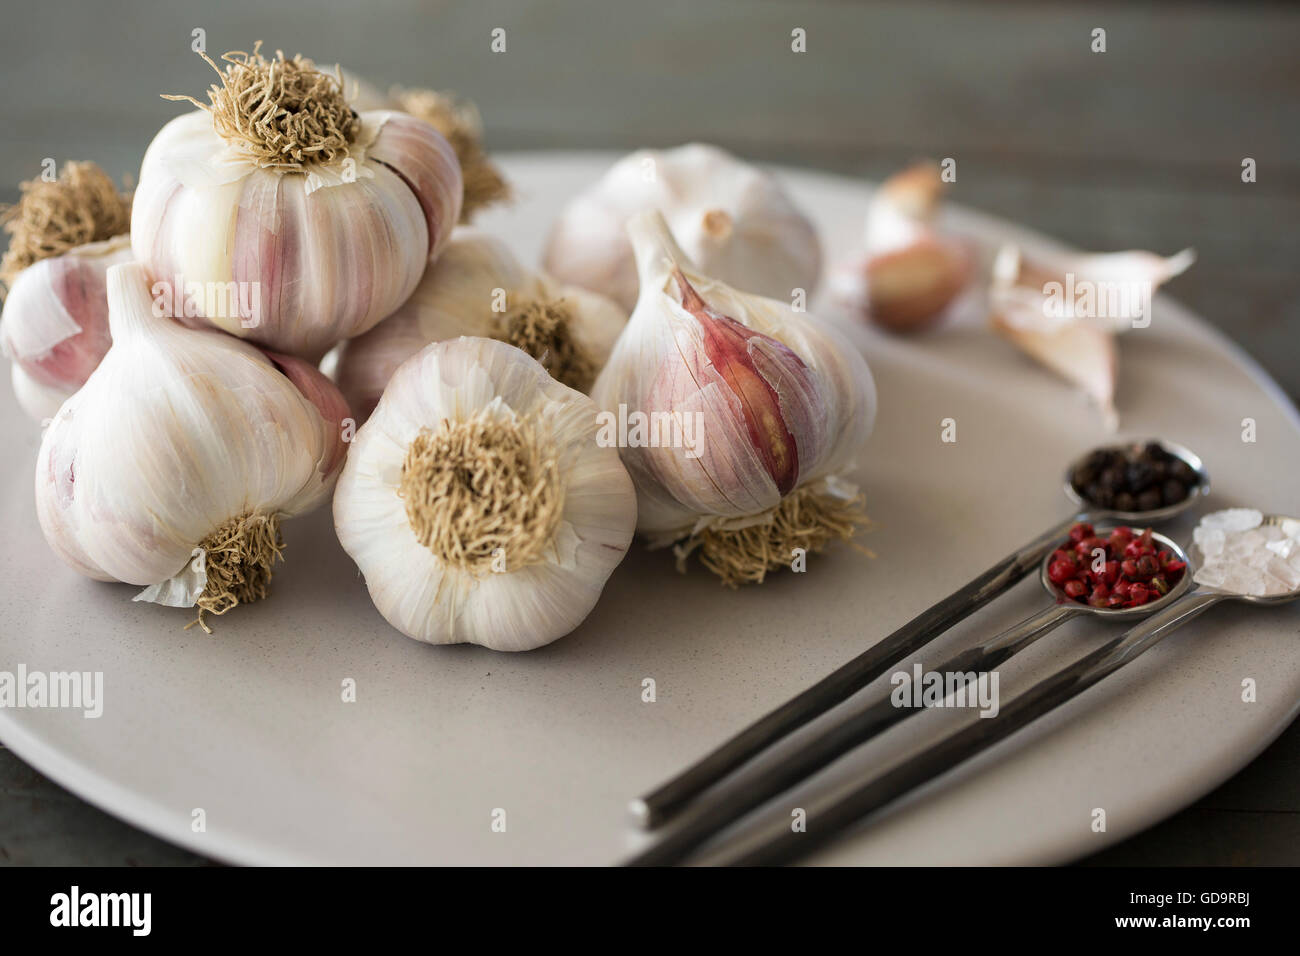 Plate of Garlic Blubs with Himalayan Pink Rock Salt and Pink and Black Peppercorns. - Stock Image